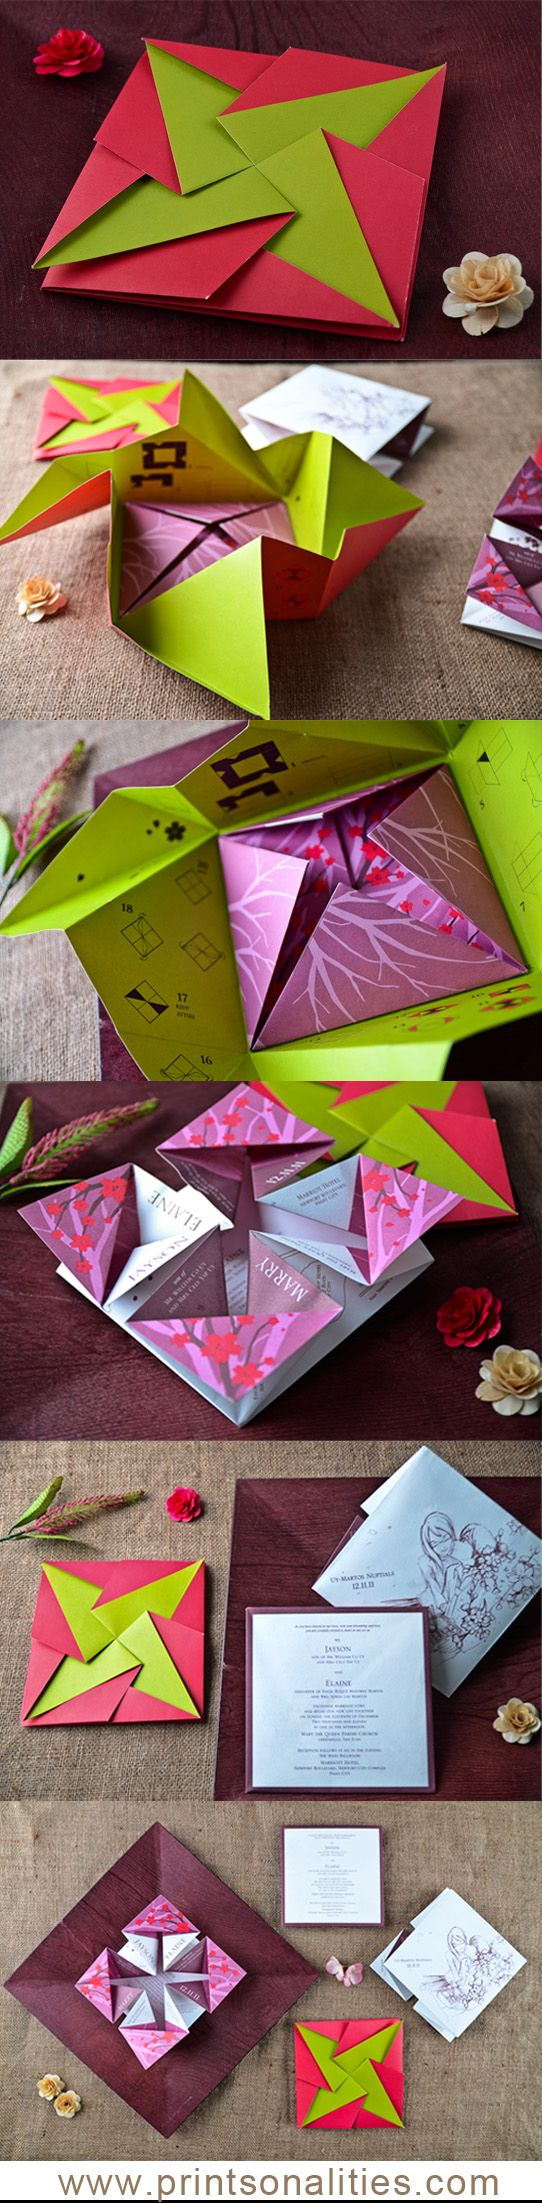 Origami bamboo letterfold folding instructions - Origami Bamboo Letterfold Folding Instructions 52